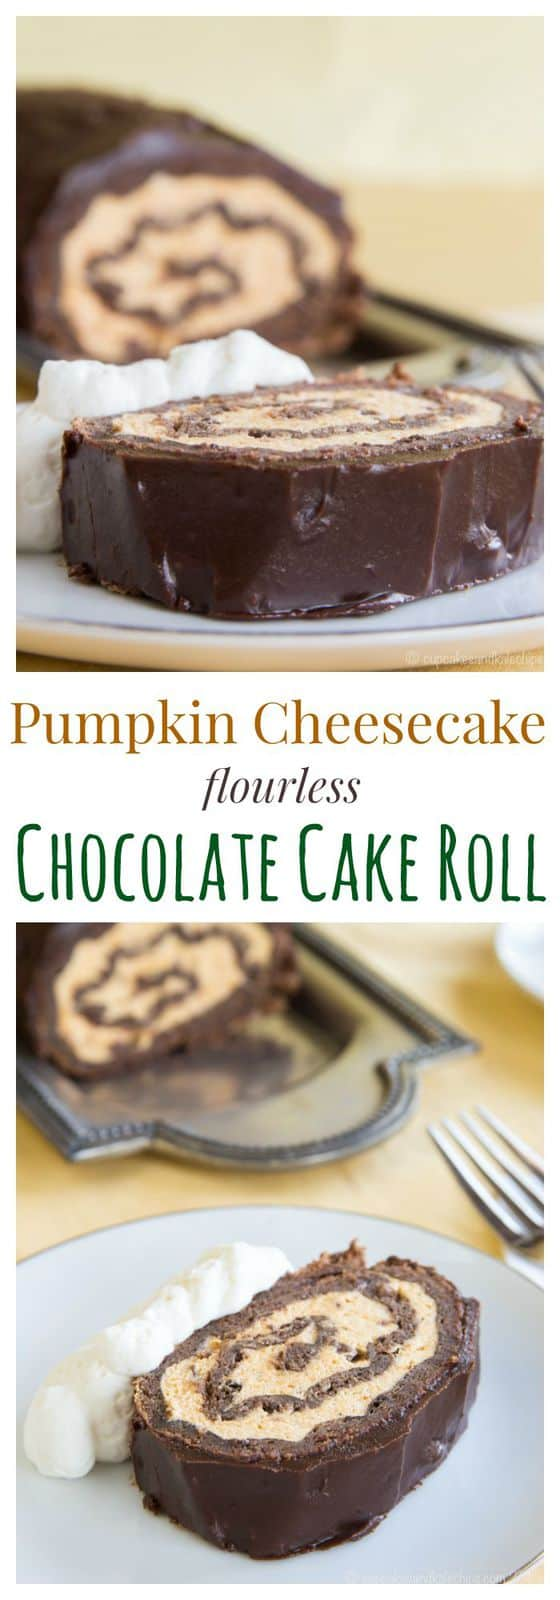 Pumpkin Cheesecake Flourless Chocolate Cake Roll - an impressive dessert for fall with pumpkin cheesecake mousse, chocolate sponge cake, and rich chocolate ganache. | cupcakesandkalechips.com | gluten free recipe